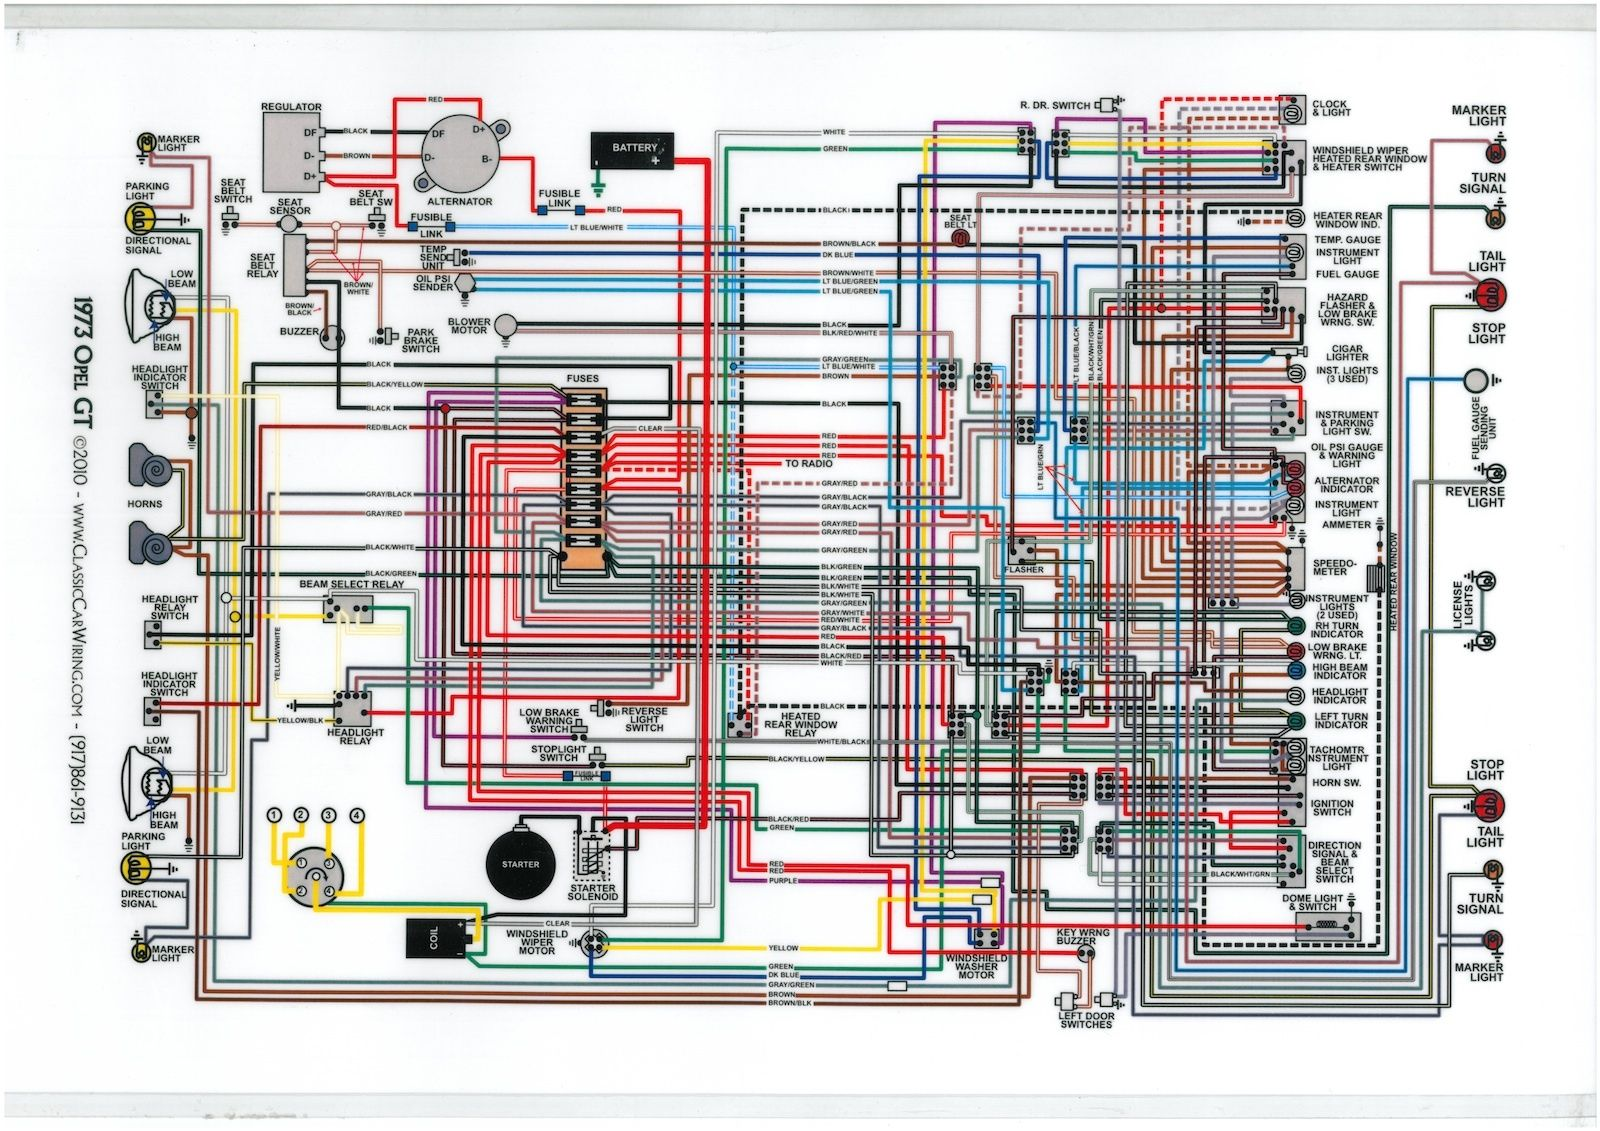 opel gt 1973 diagram electrical technical drawing opel gt 1900 opel astra  opel gt 1973 diagram